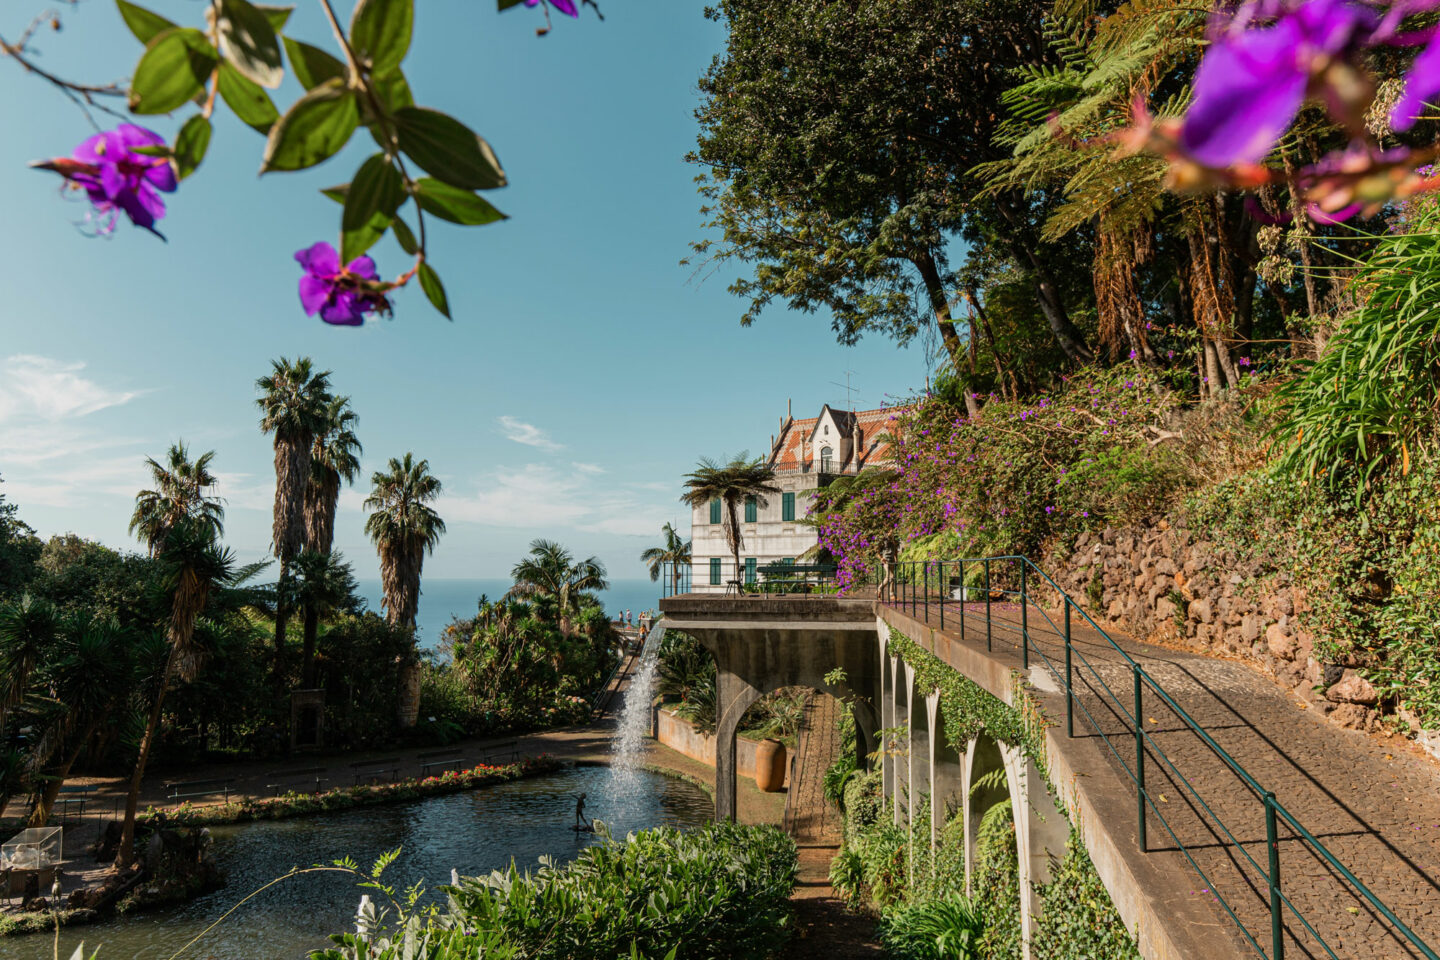 Monte Palace Tropical Gardens-Top-things-to-do-in-madeira-Bucket-list--Instagram-Story-Template--kelseyinlondon-Kelsey-Heinrichs--What-to-do-in-madeira--Where-to-go-in-madeira-top-places-in-madeira-